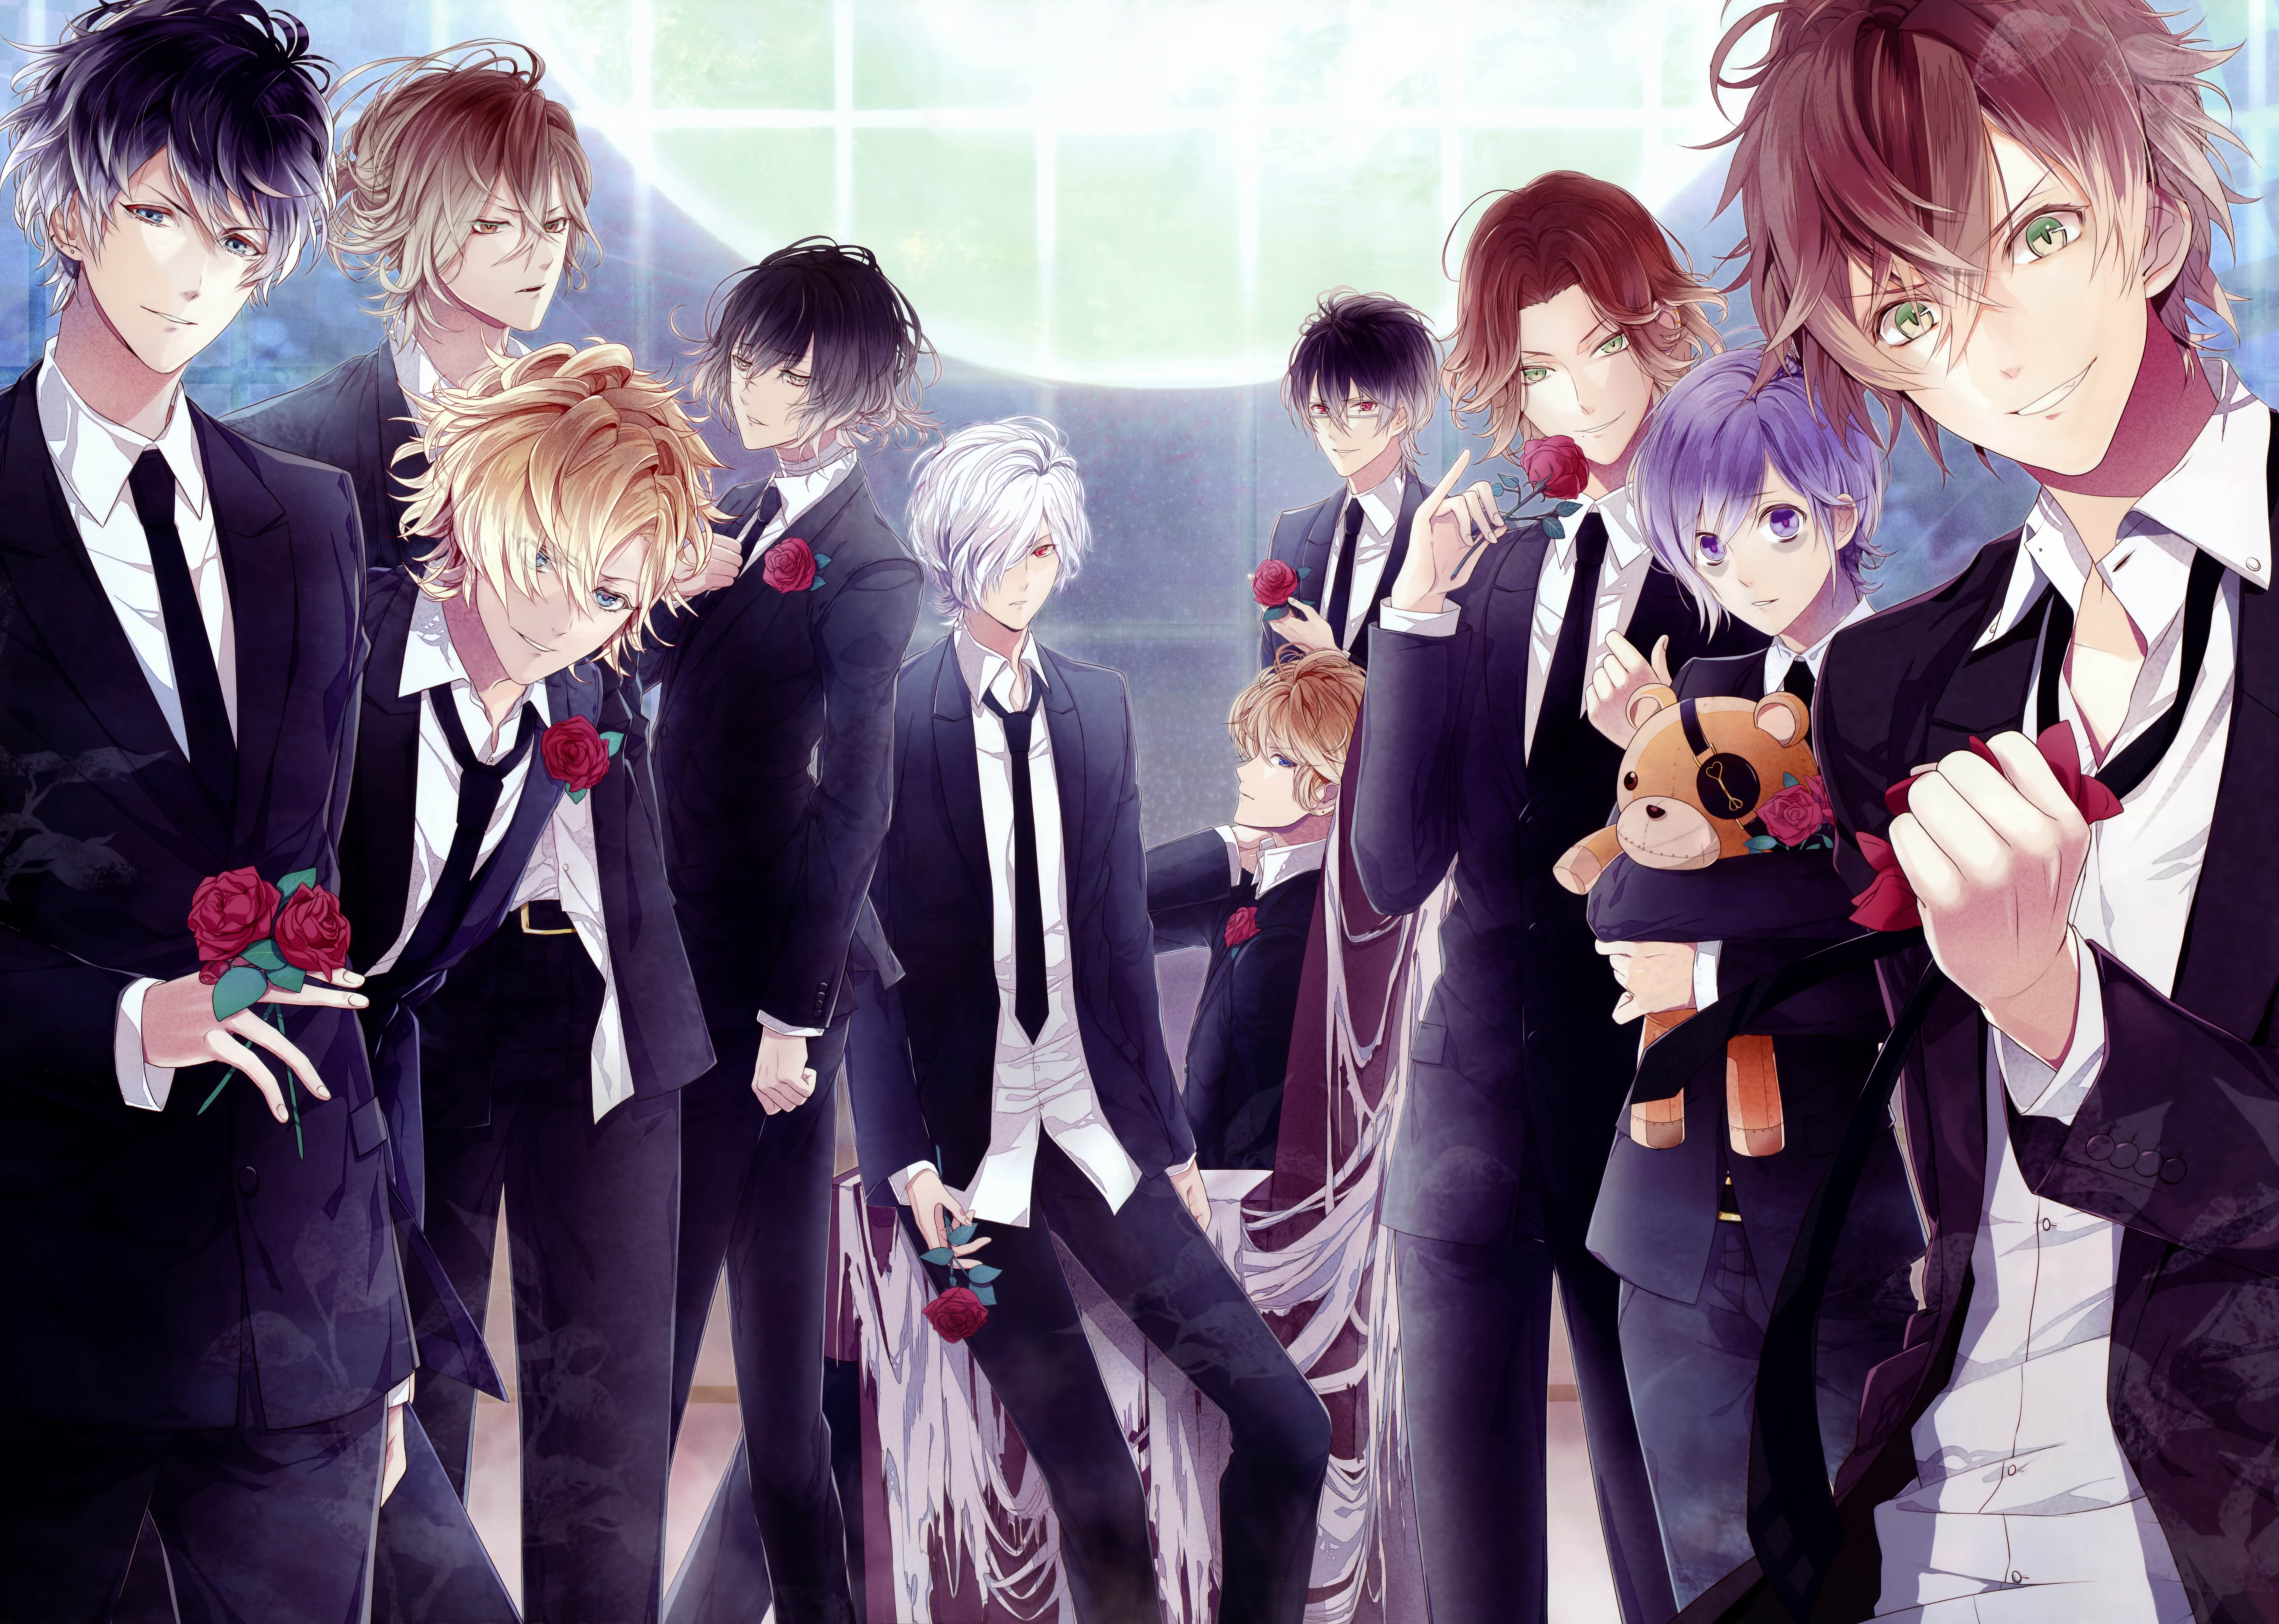 http://static.zerochan.net/Diabolik.Lovers.~Haunted.dark.bridal~.full.1865891.jpg